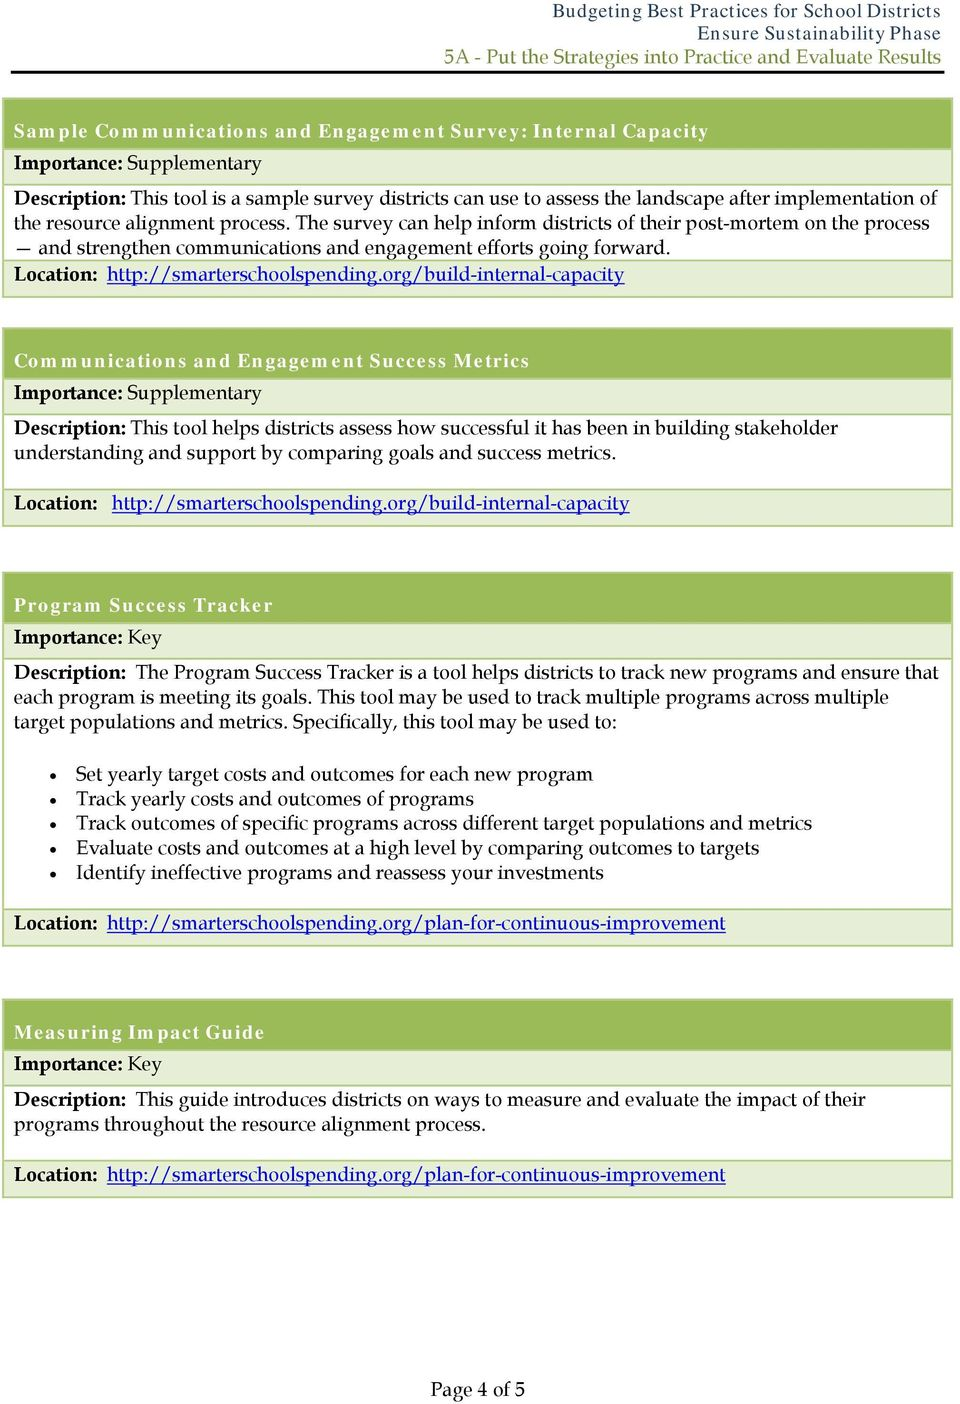 Communications and Engagement Success Metrics Description: This tool helps districts assess how successful it has been in building stakeholder understanding and support by comparing goals and success